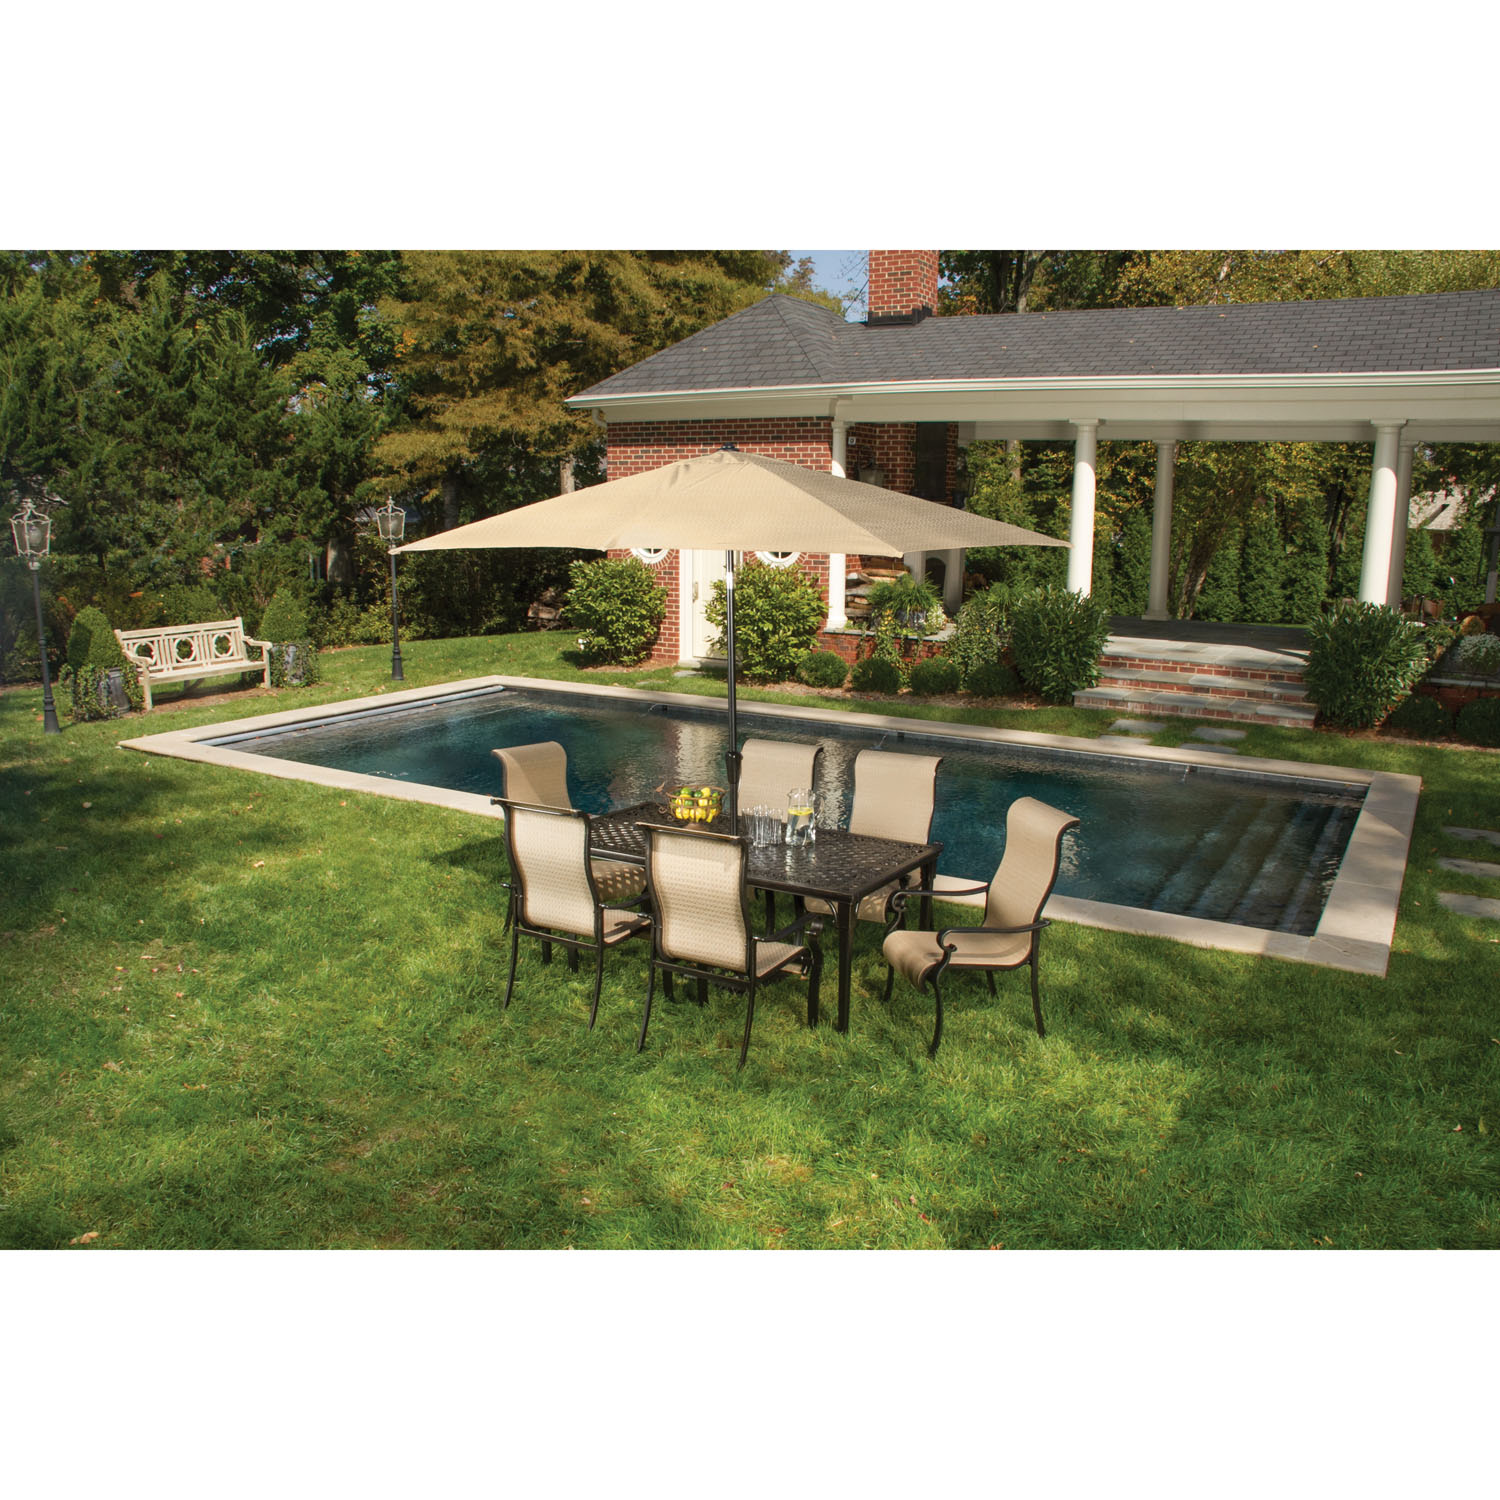 Hanover Brigantine Aluminum Outdoor Dining Set with 6 Contoured-Sling Chairs, Cast-Top Table, Umbrella and Stand